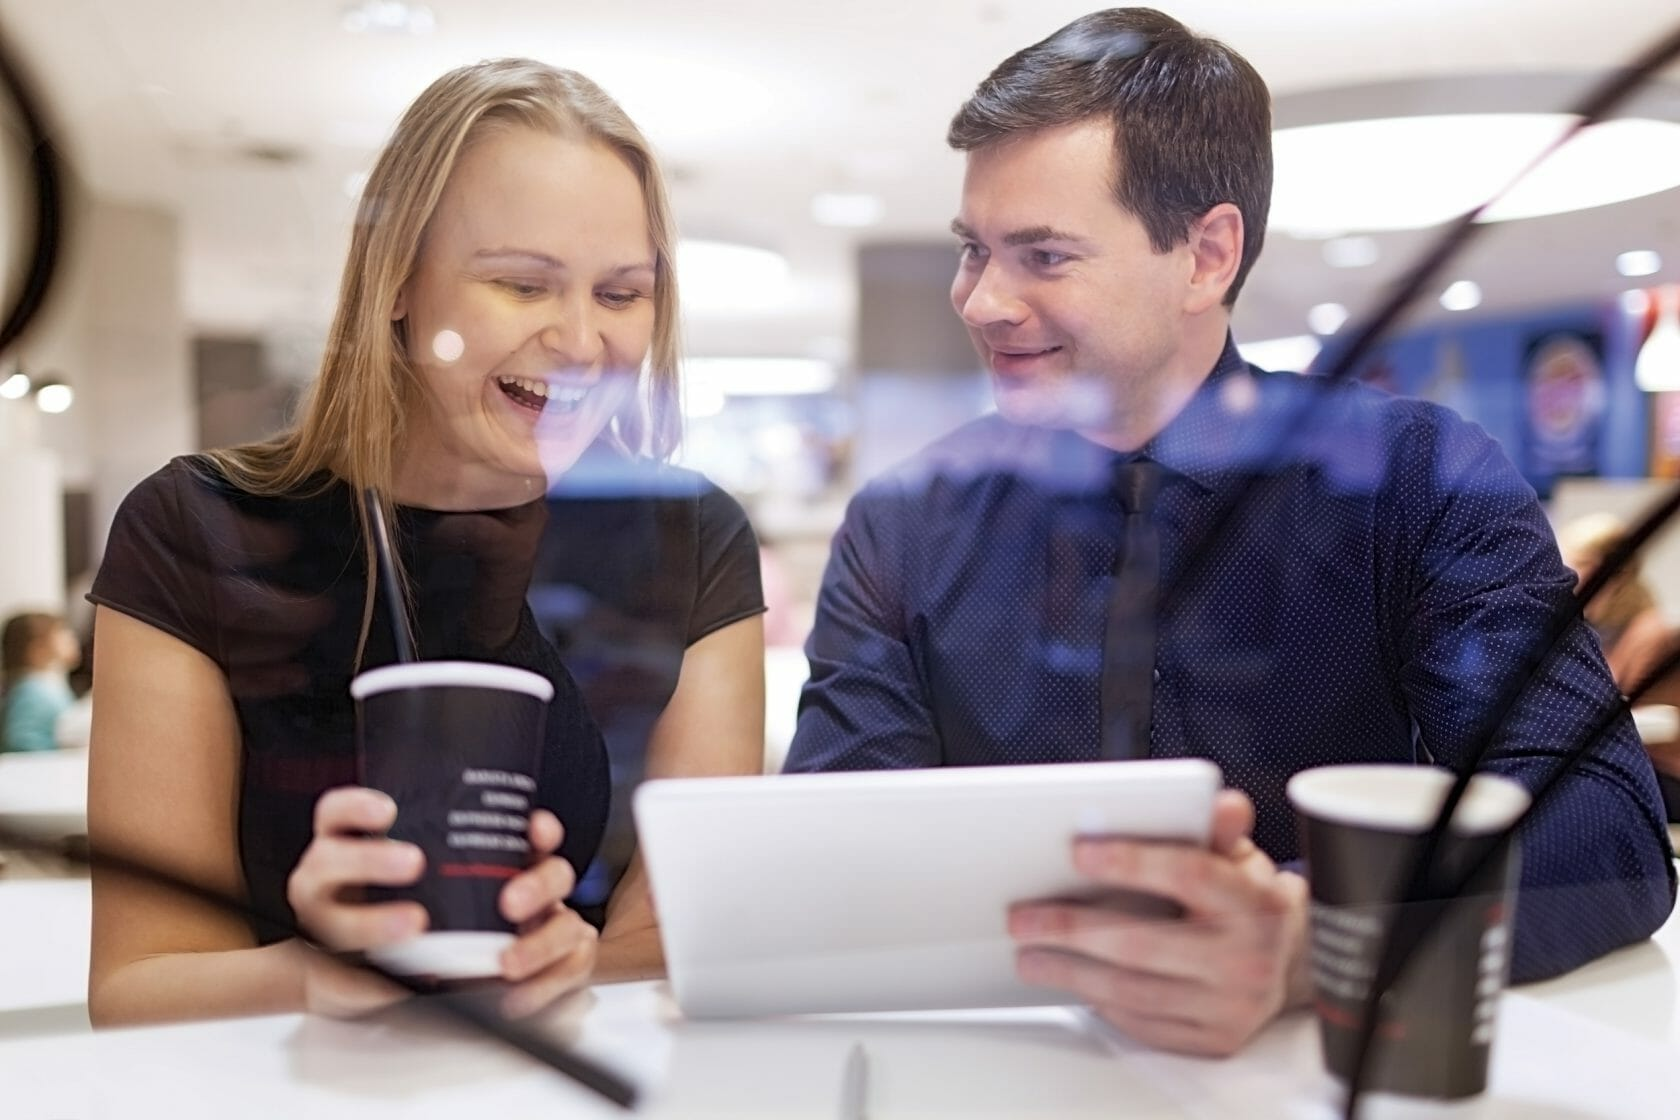 Woman laughs as man shows her something on his tablet as they sit on a table